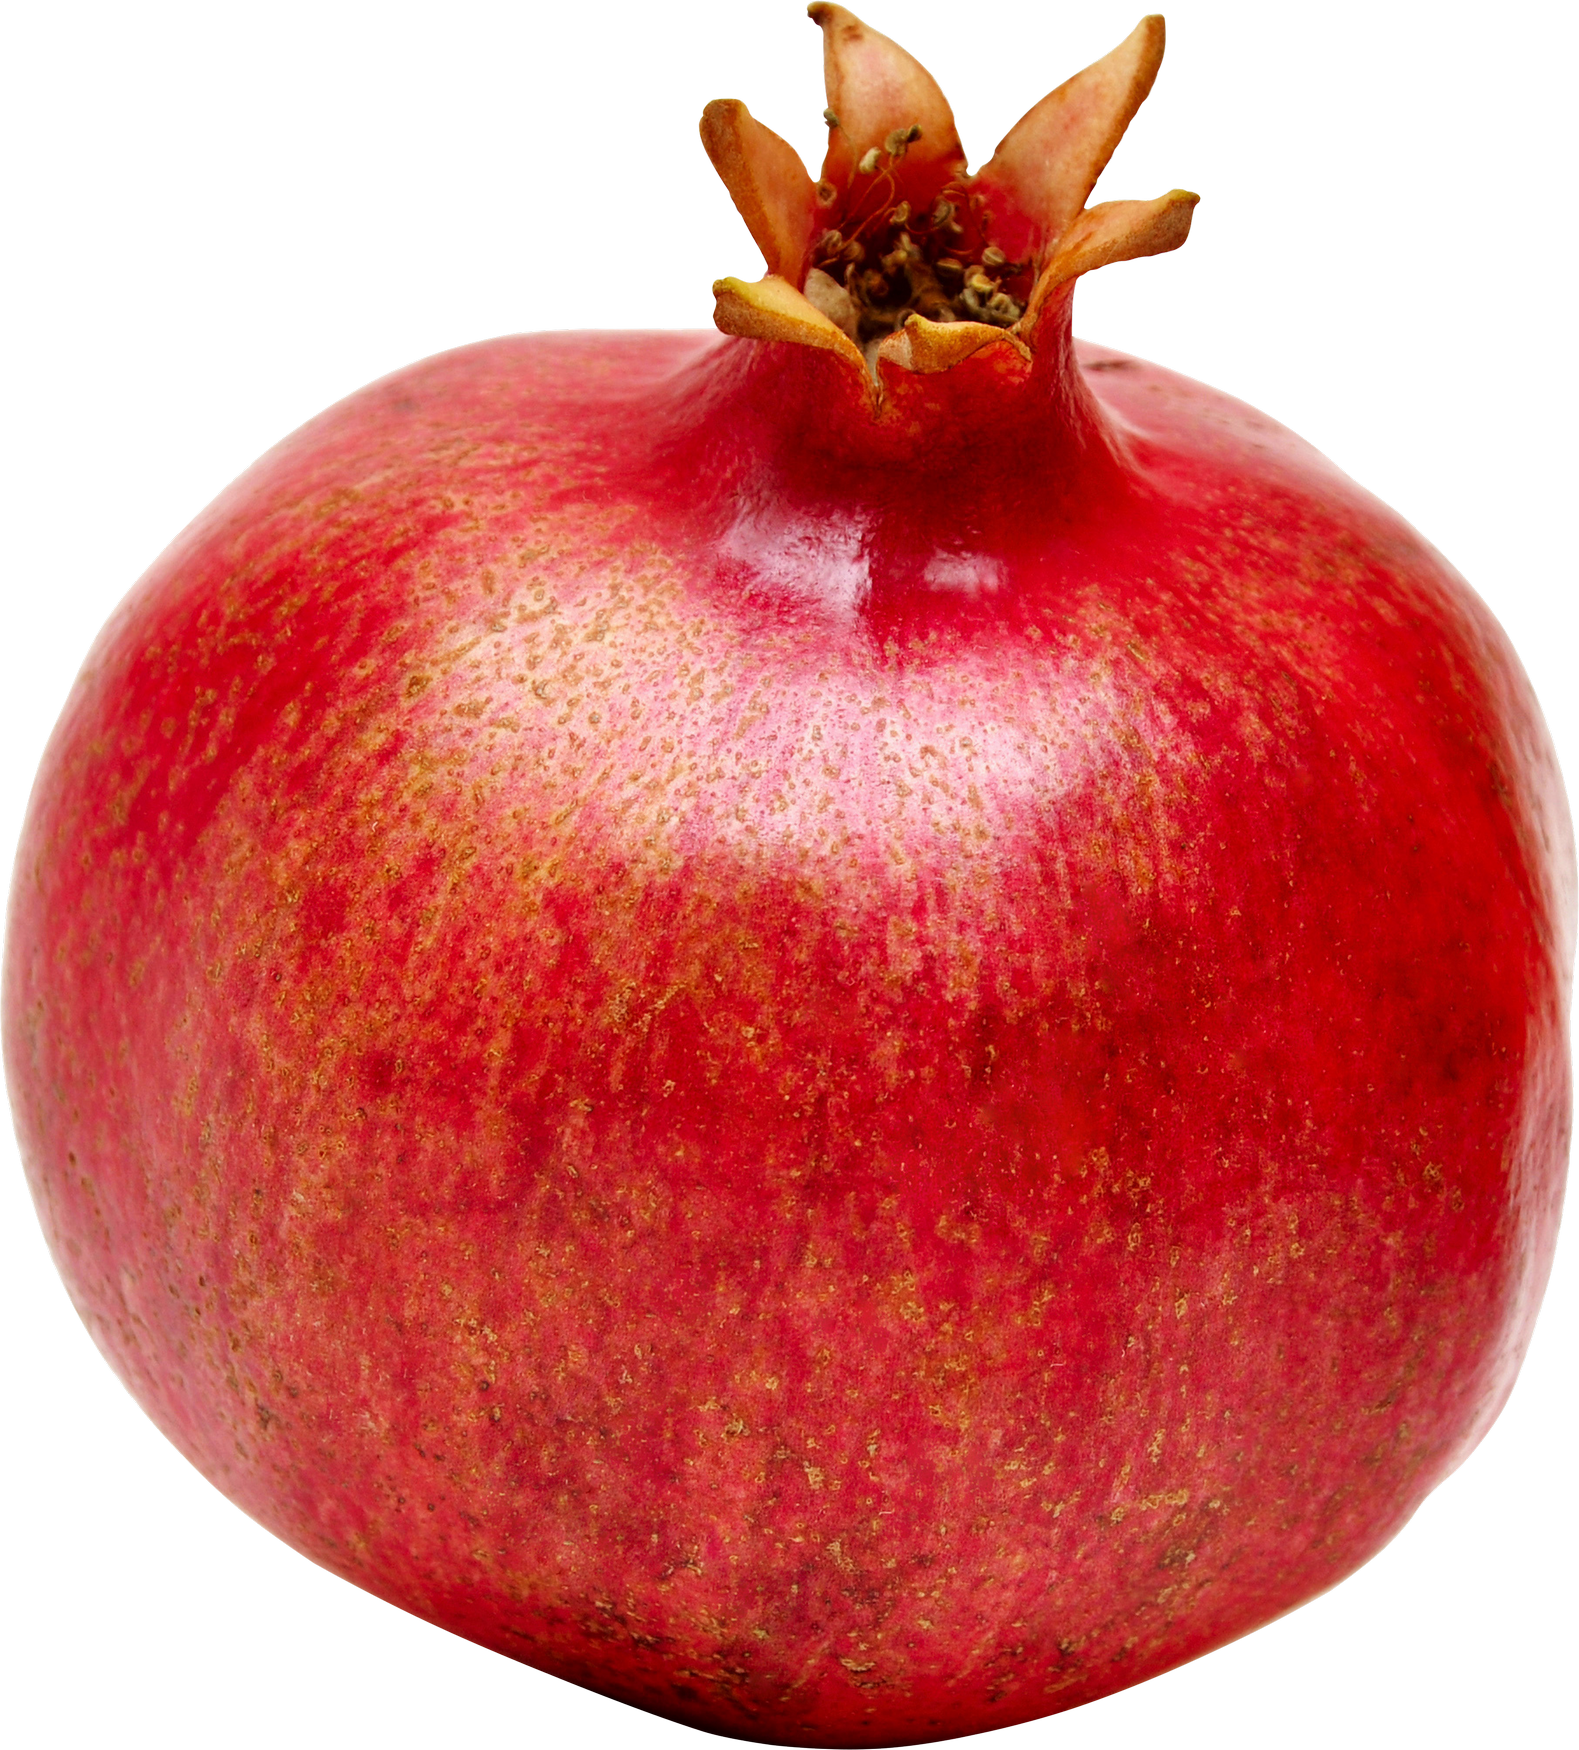 Fruit clipart pomegranate. Png image purepng free